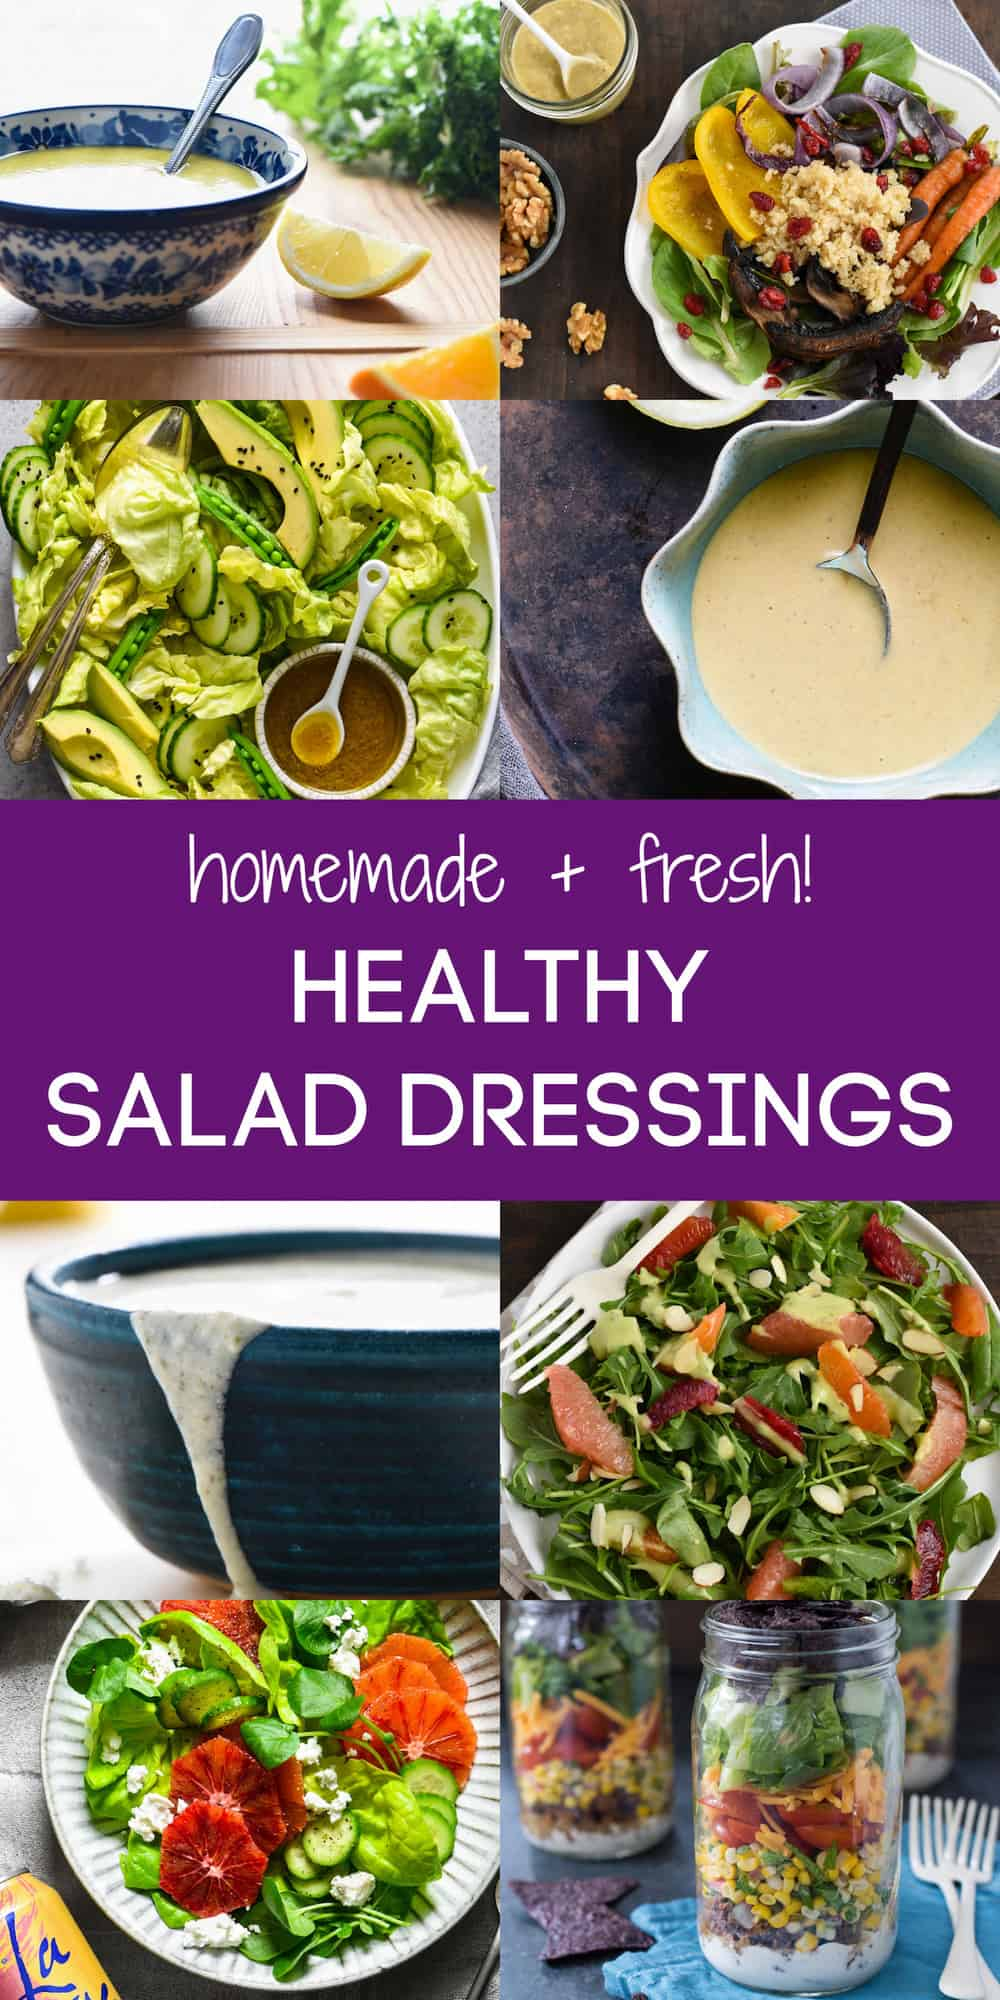 Collage of eight healthy salad dressings and salads with overlay: homemade + fresh HEALTHY SALAD DRESSINGS.